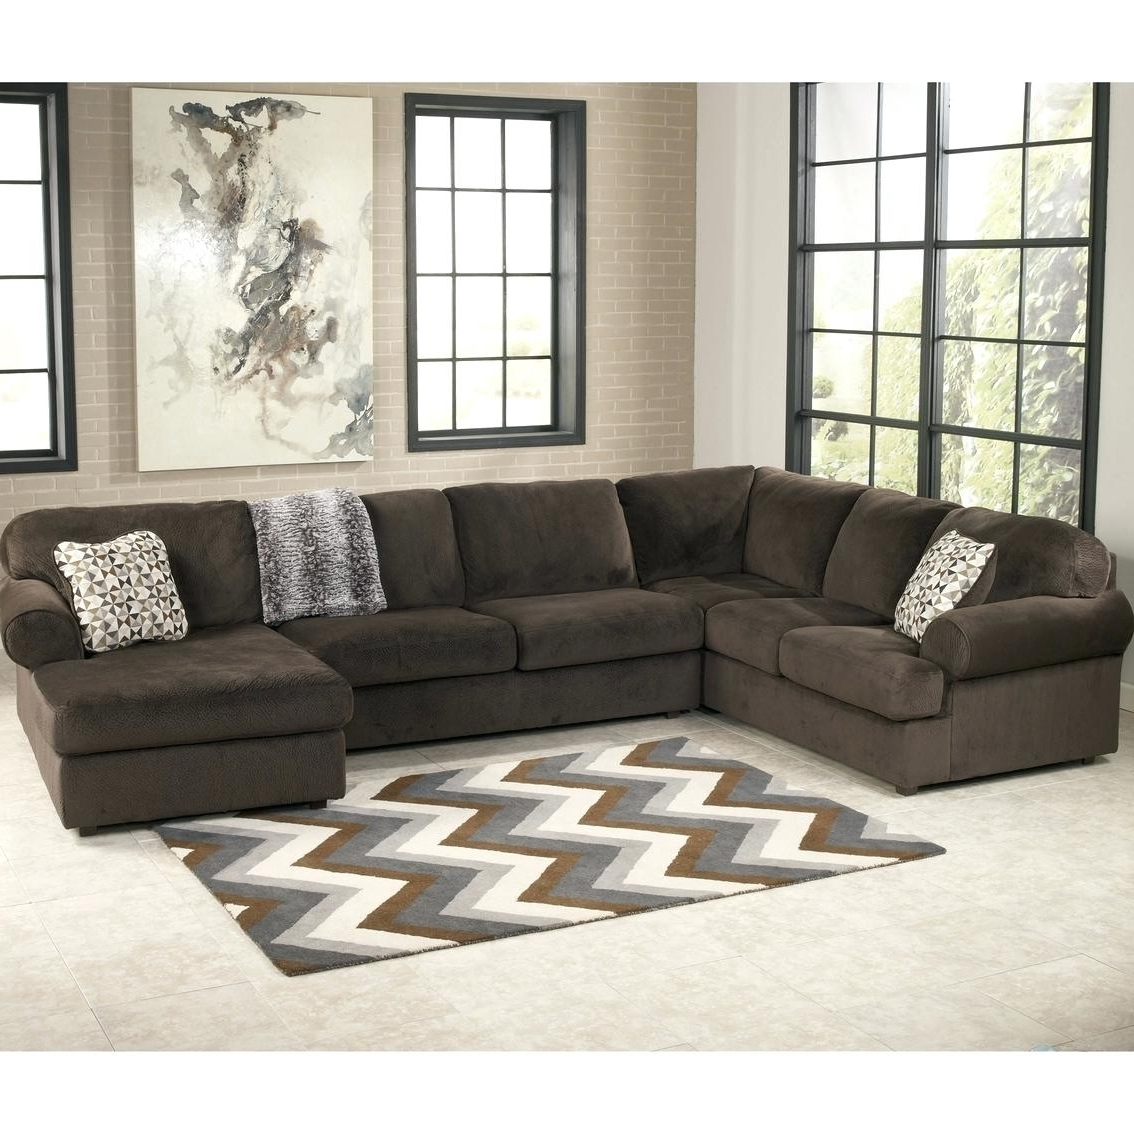 Harrisburg Pa Sectional Sofas With Regard To Well Known Sectionals Sofa Sofas Cheap Sectional For Small Spaces Canada (View 11 of 20)